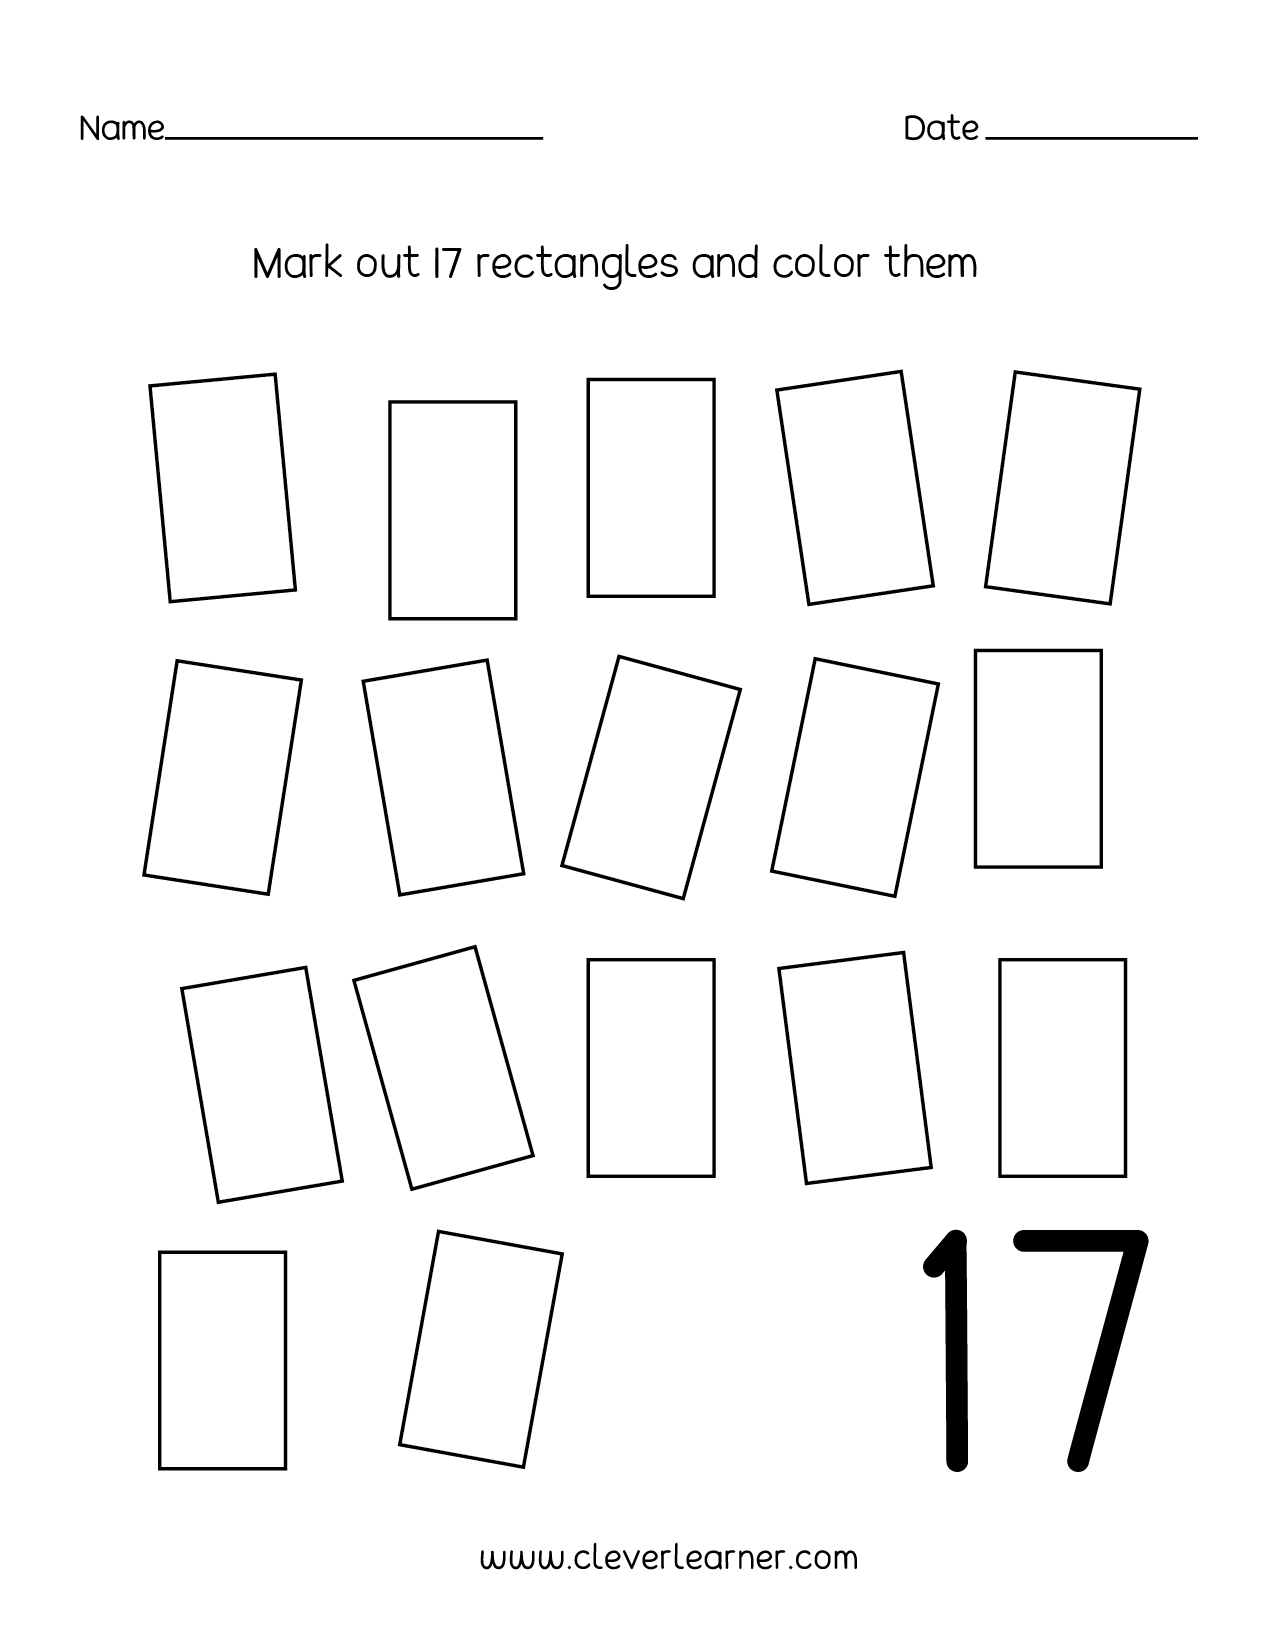 Number 17 Writing Counting And Identification Printable Worksheets For Children